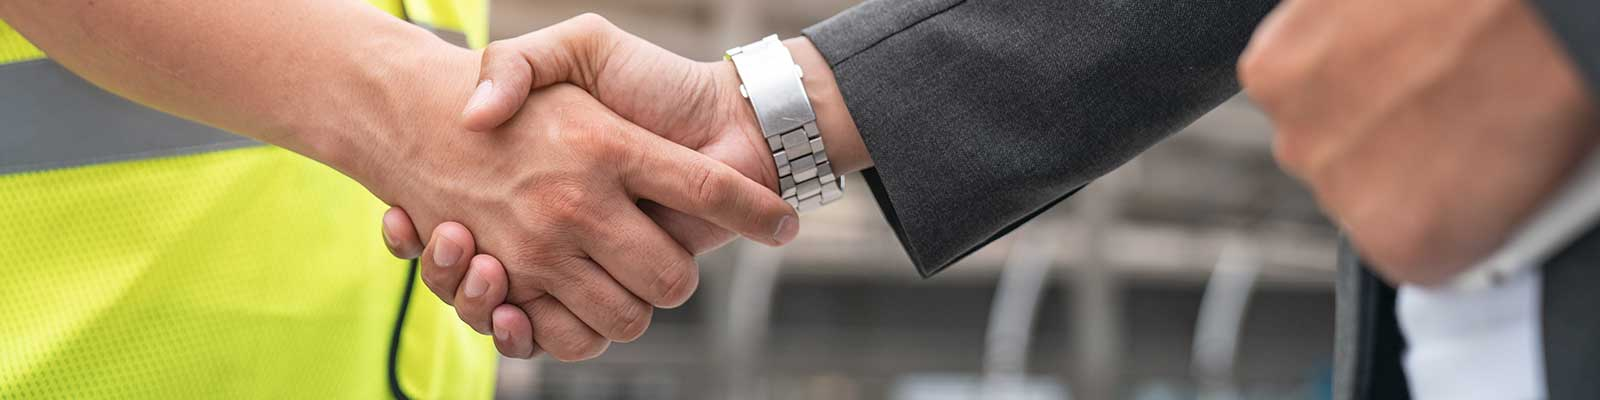 close up of handshake between man in suit and construction vest